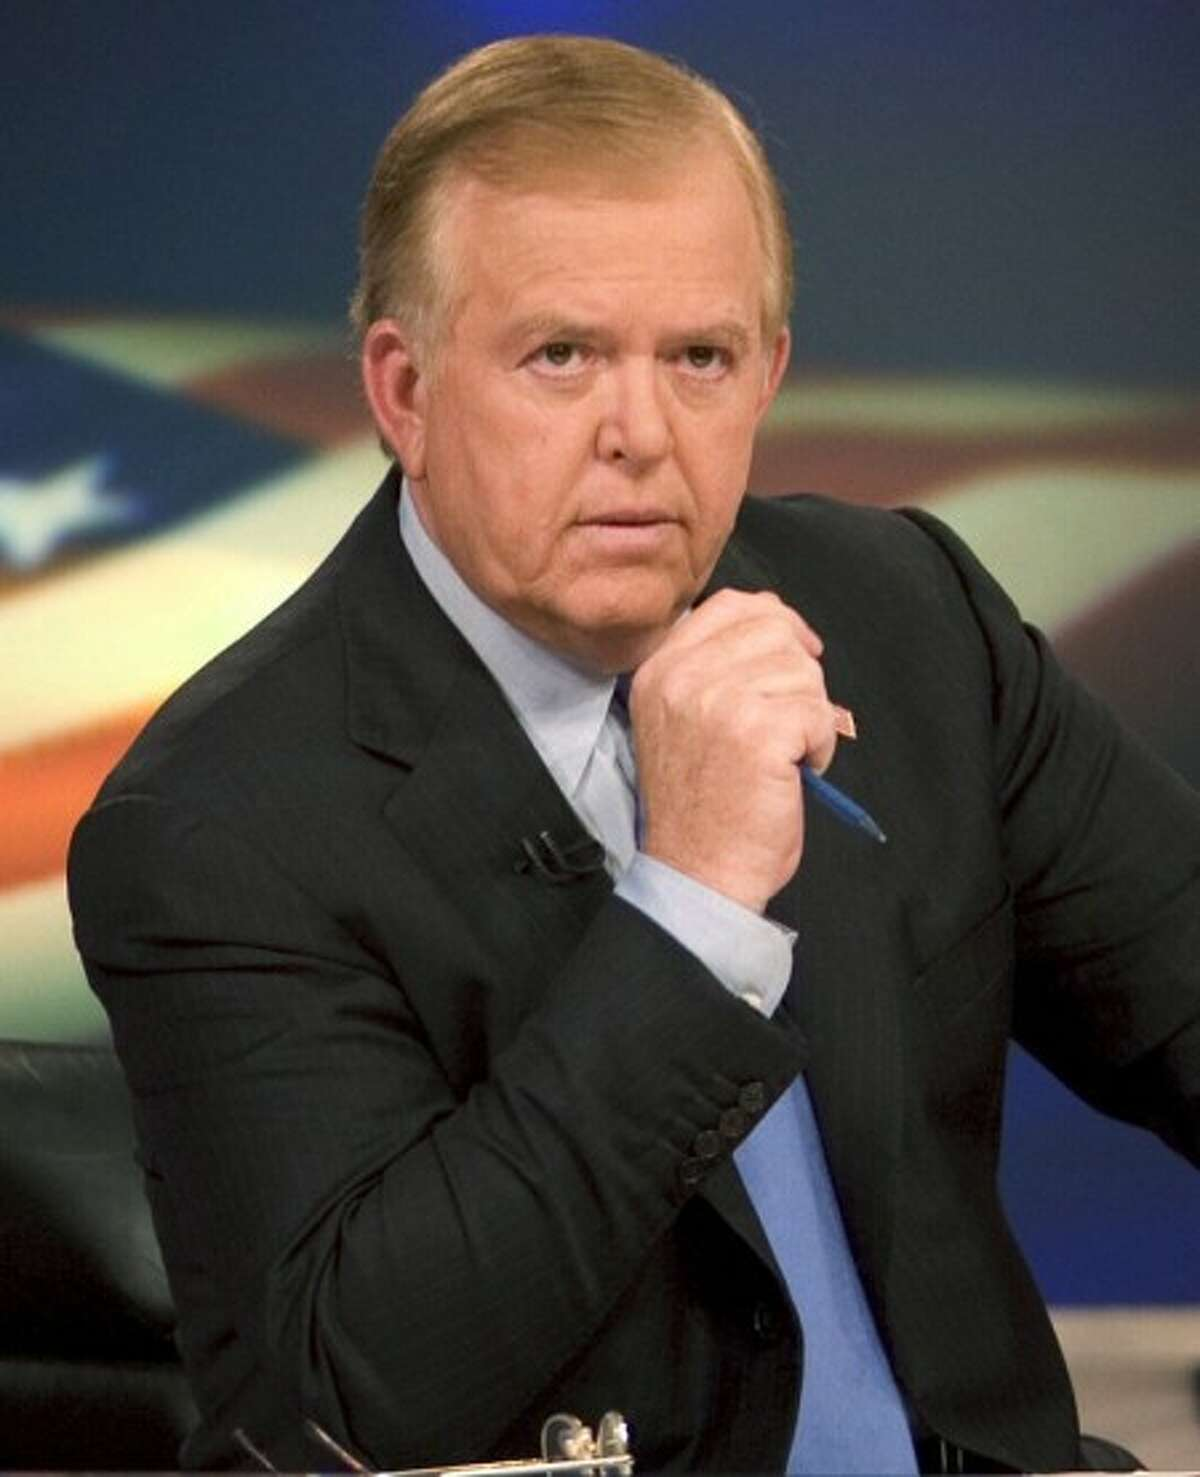 """FILE - In this 2005 file photo provided by CNN, news anchor Lou Dobbs sits on the set of his show, """"Lou Dobs Tonight,"""" in New York (AP Photo/CNN, Mark Hill, File)"""